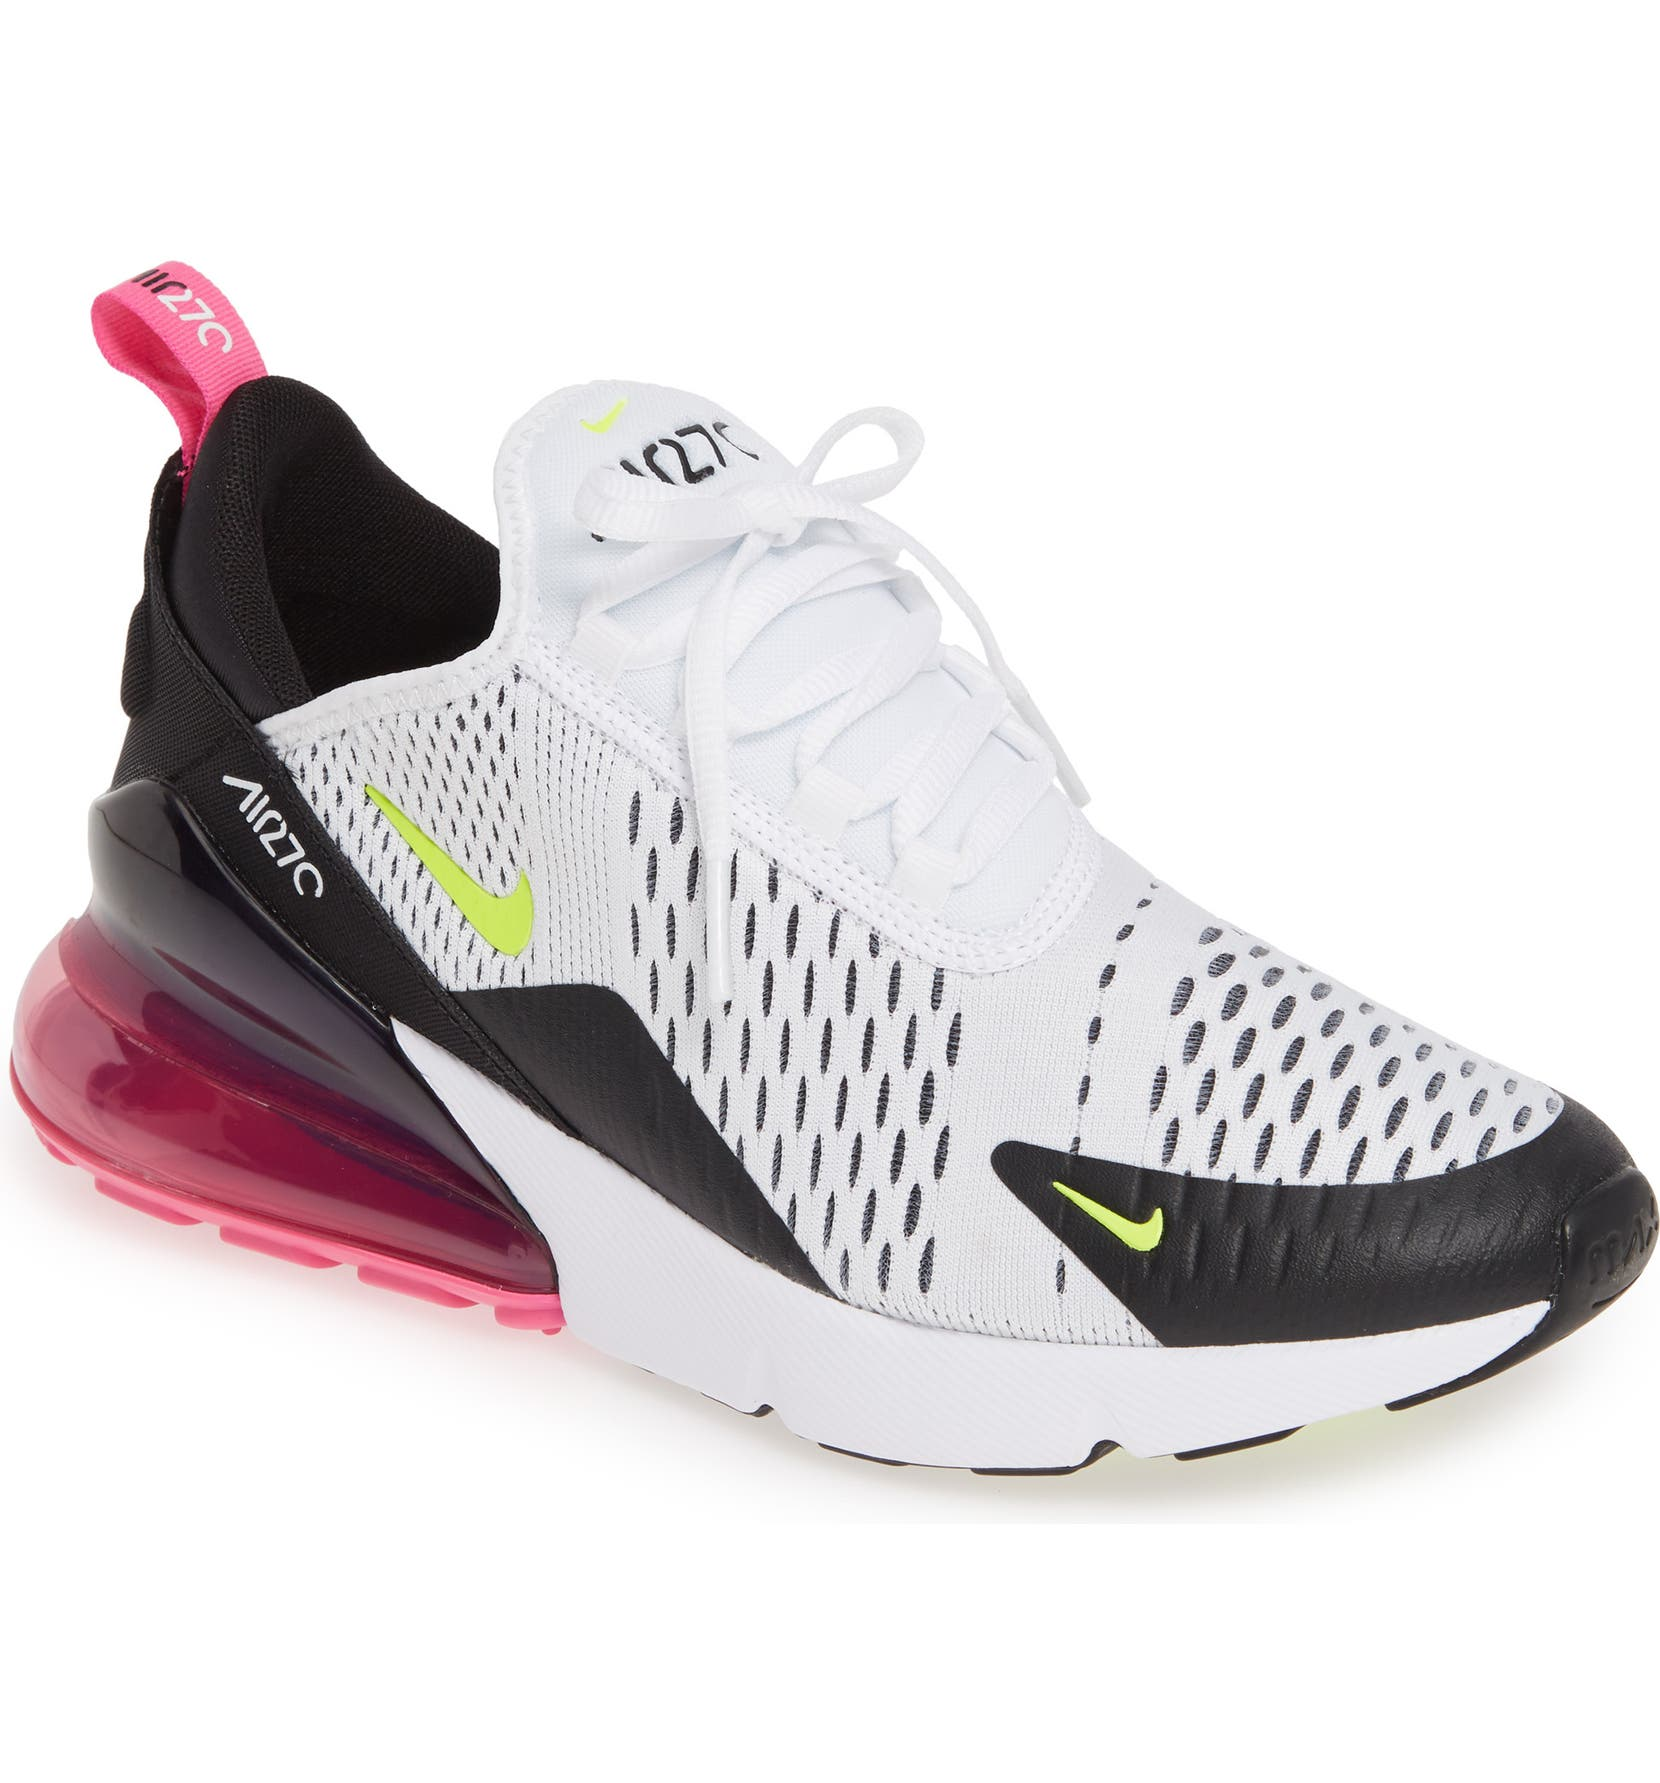 info for 4f9b3 0ced6 Nike Air Max 270 Sneaker (Toddler, Little Kid   Big Kid)   Nordstrom